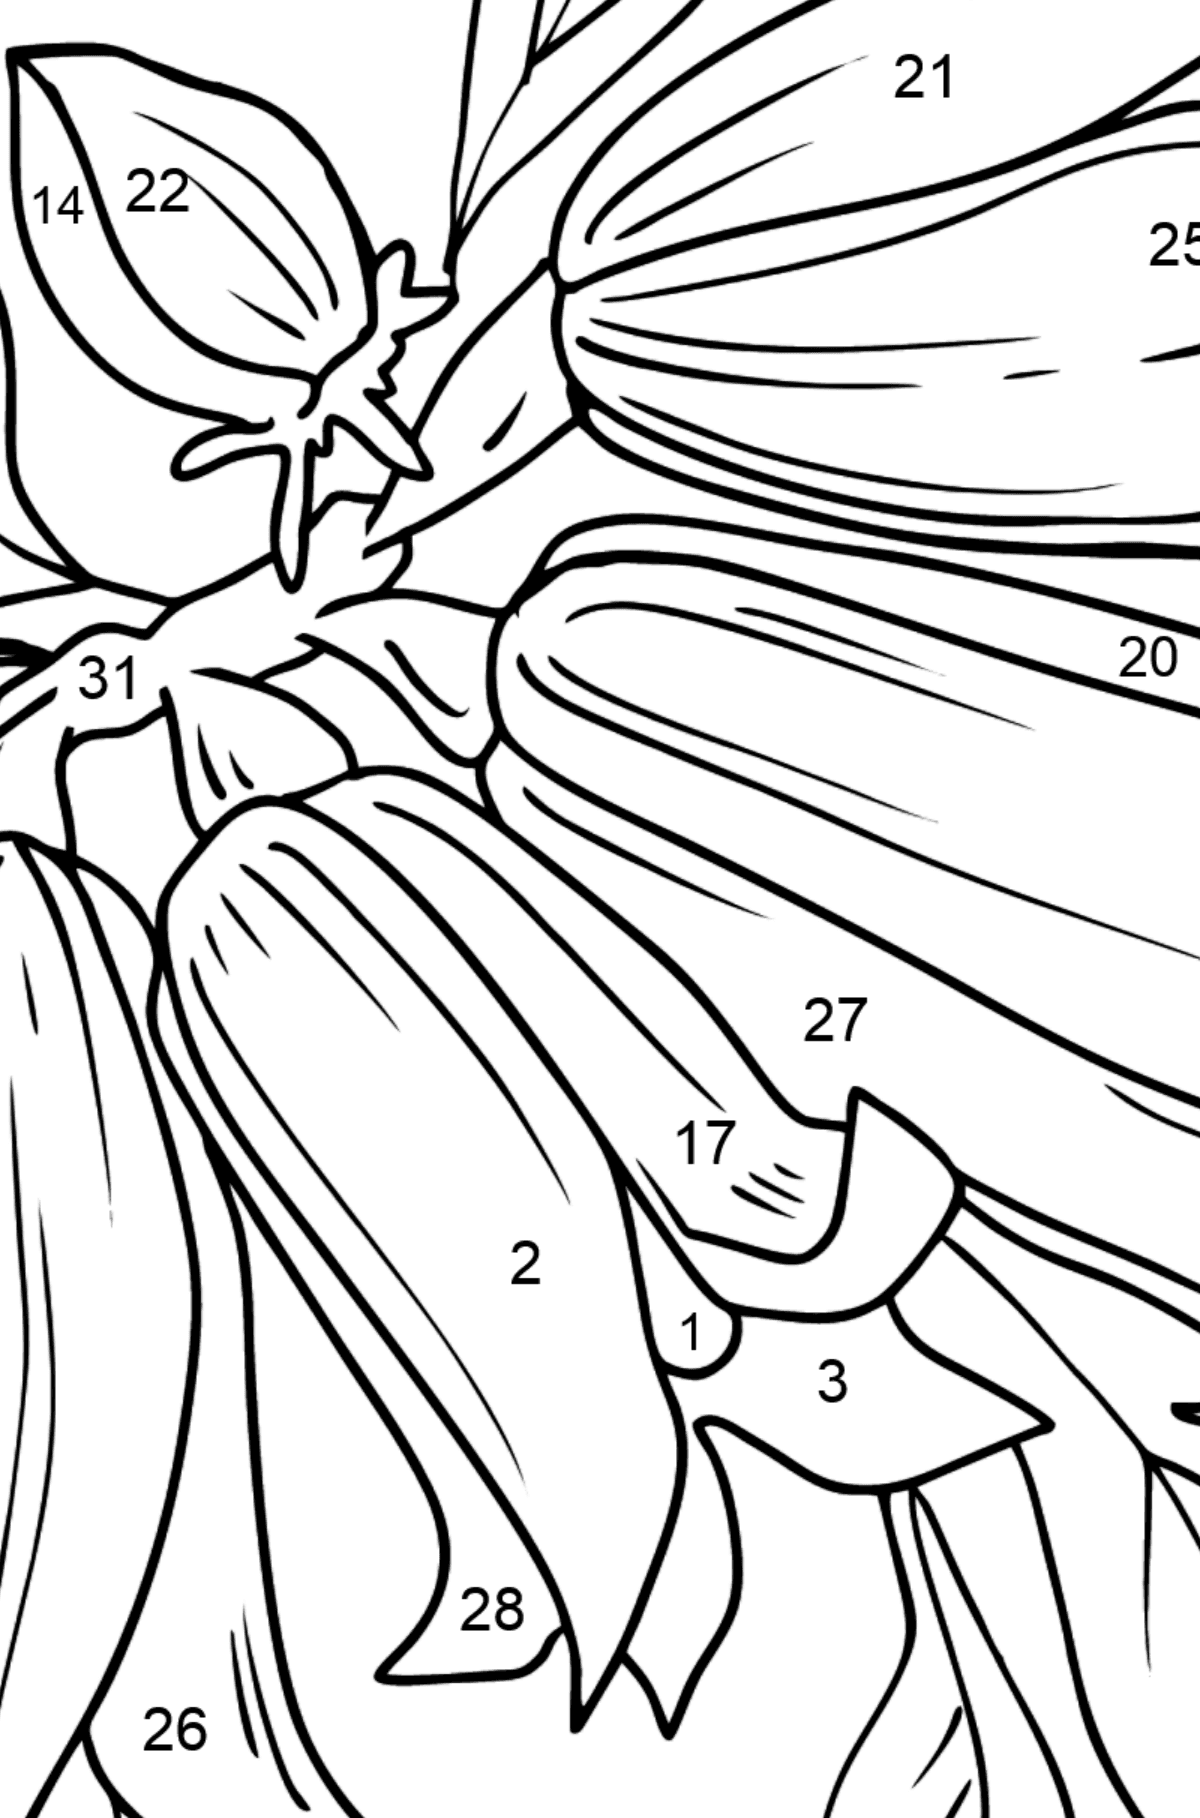 Flower Coloring Page - Bells - Coloring by Numbers for Kids